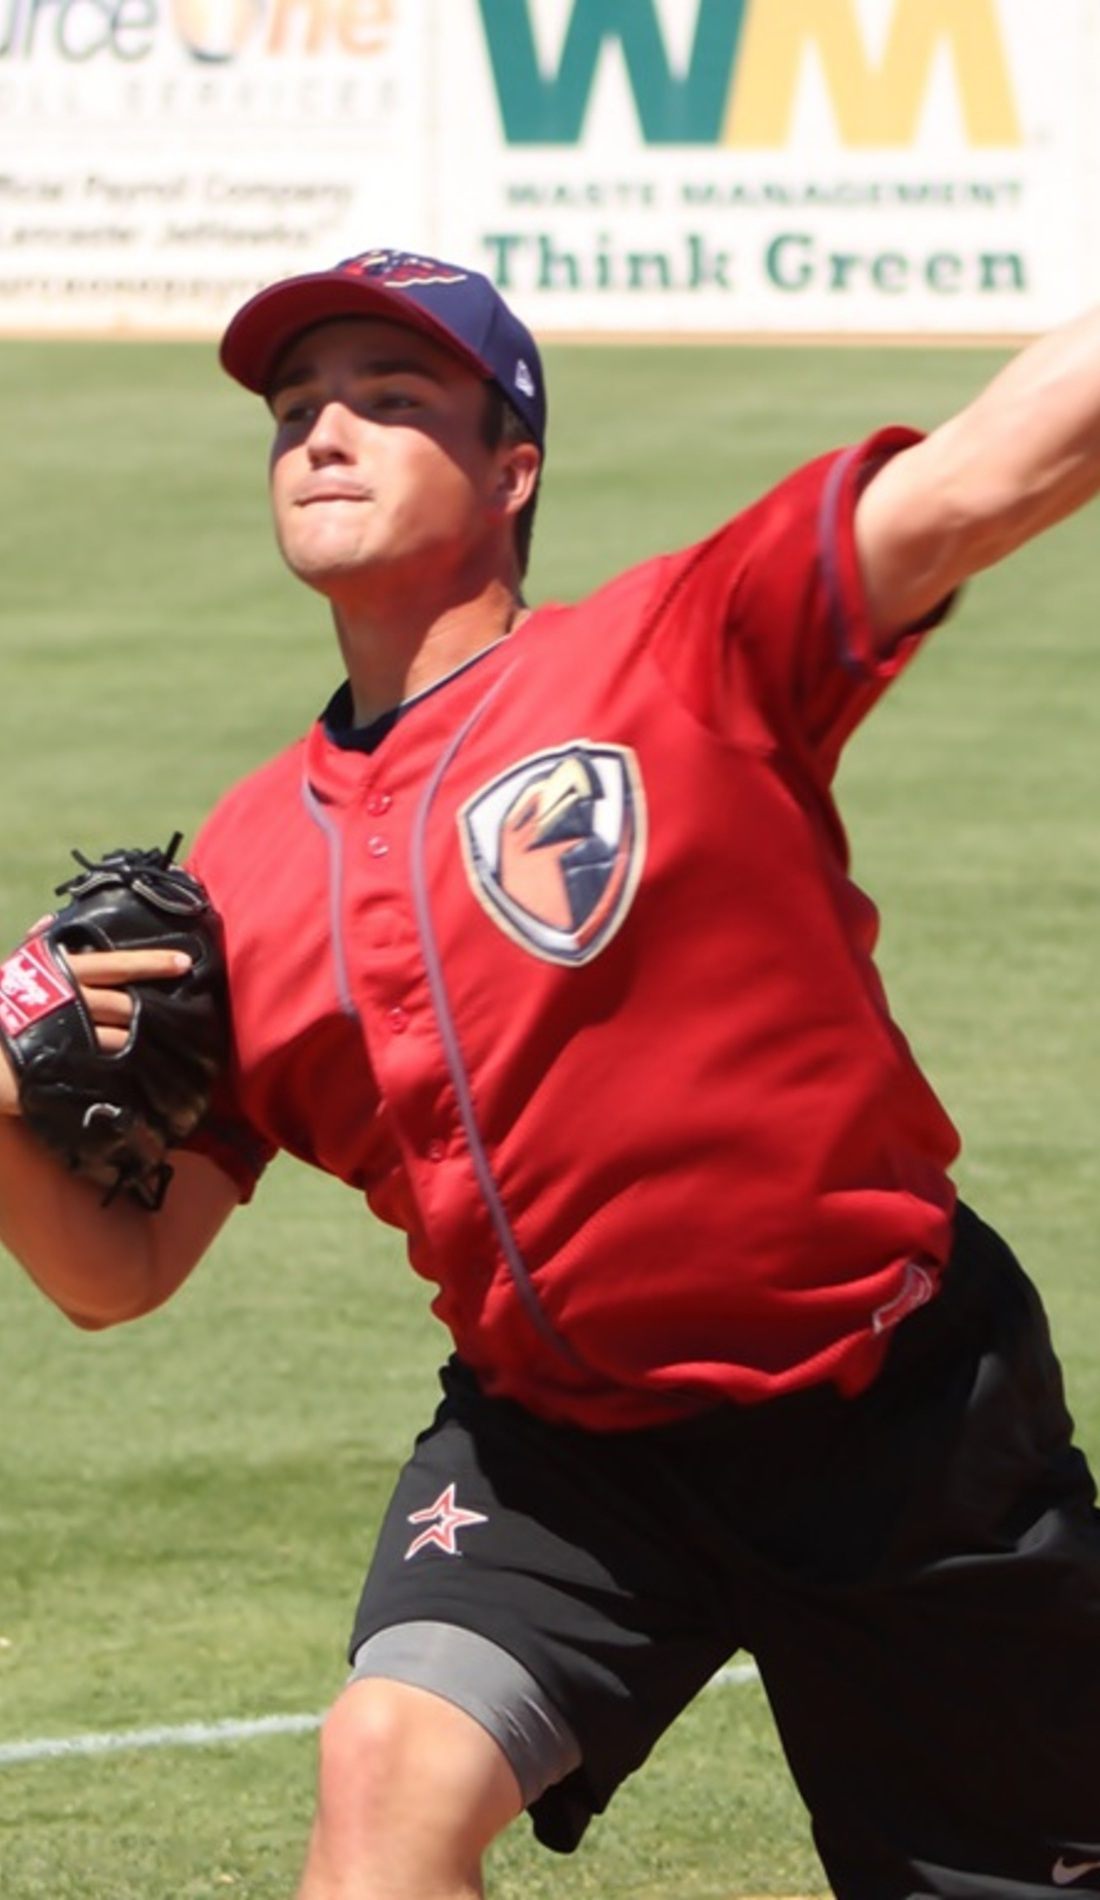 A Lancaster JetHawks live event